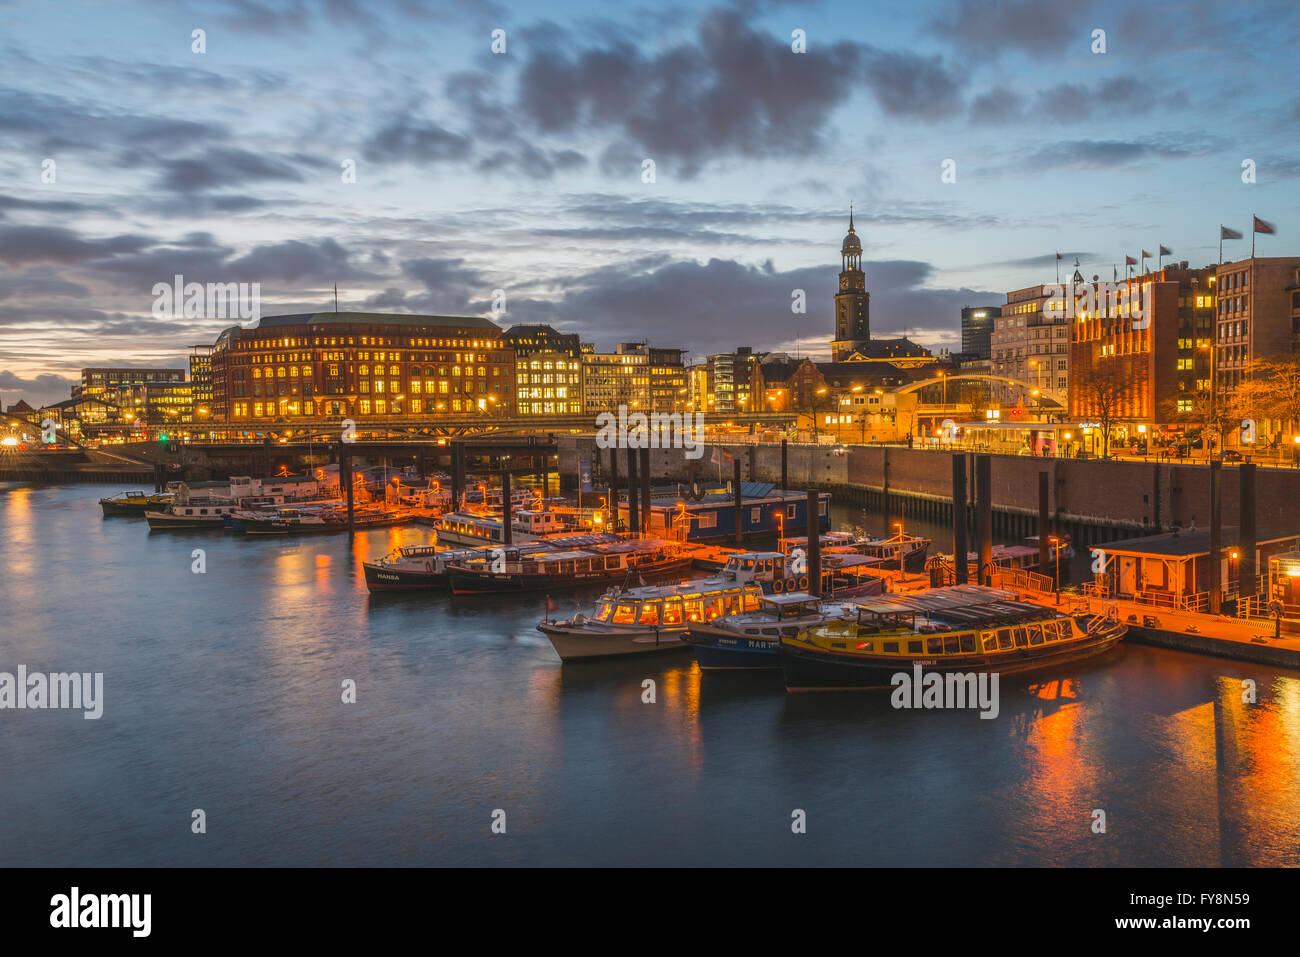 Germany, Hamburg, Inland harbour with St. Michaelis Church - Stock Image